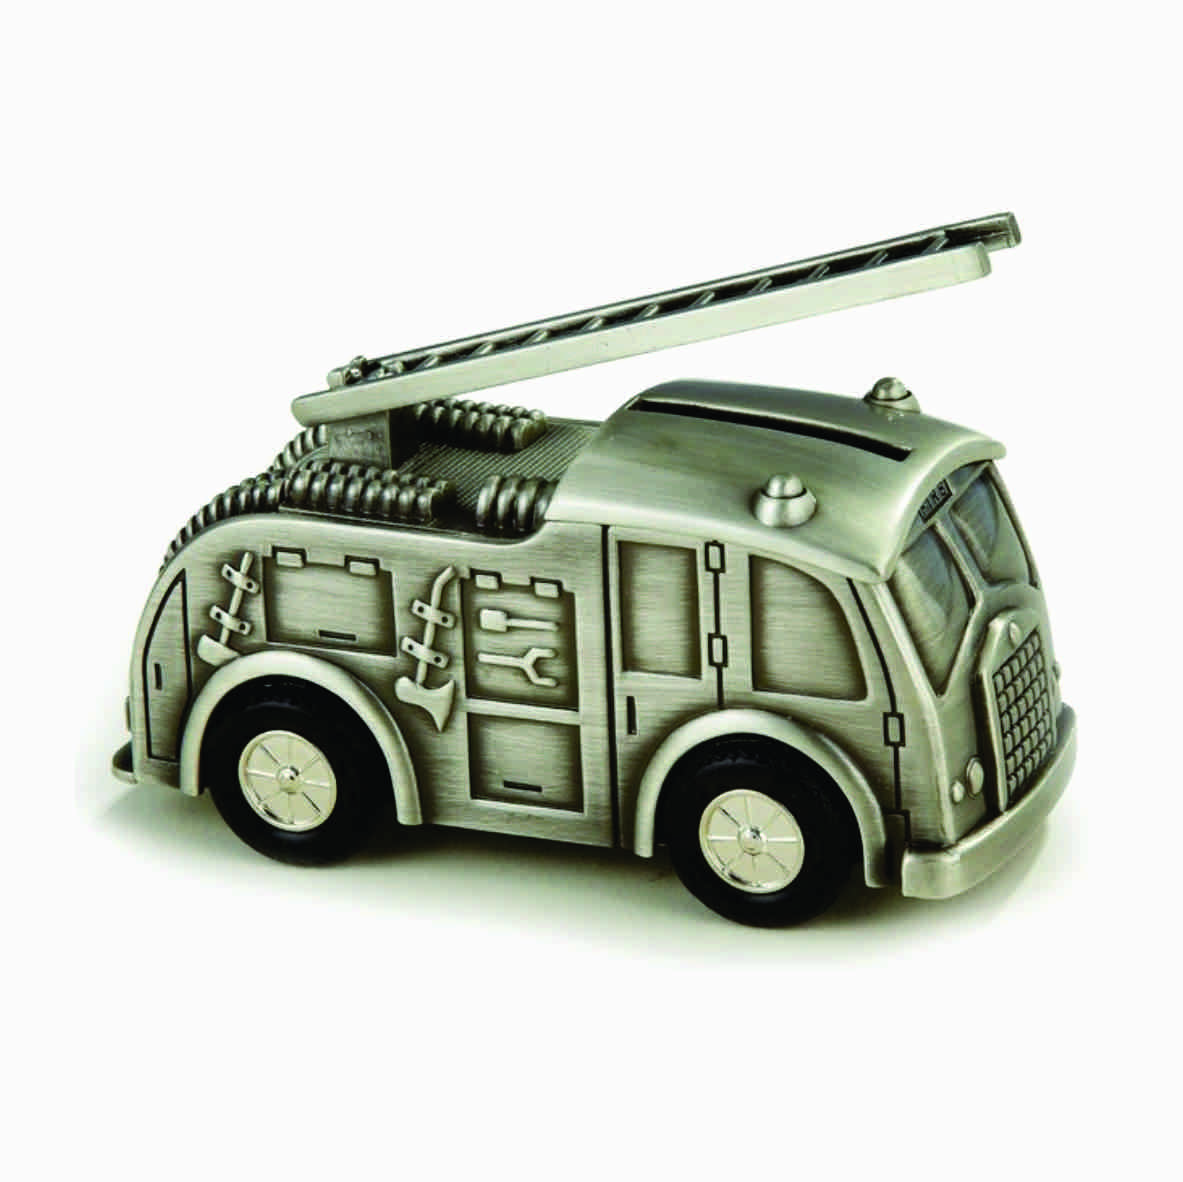 FIRE TRUCK ENGINE MONEY BOX, PEWTER FINISH